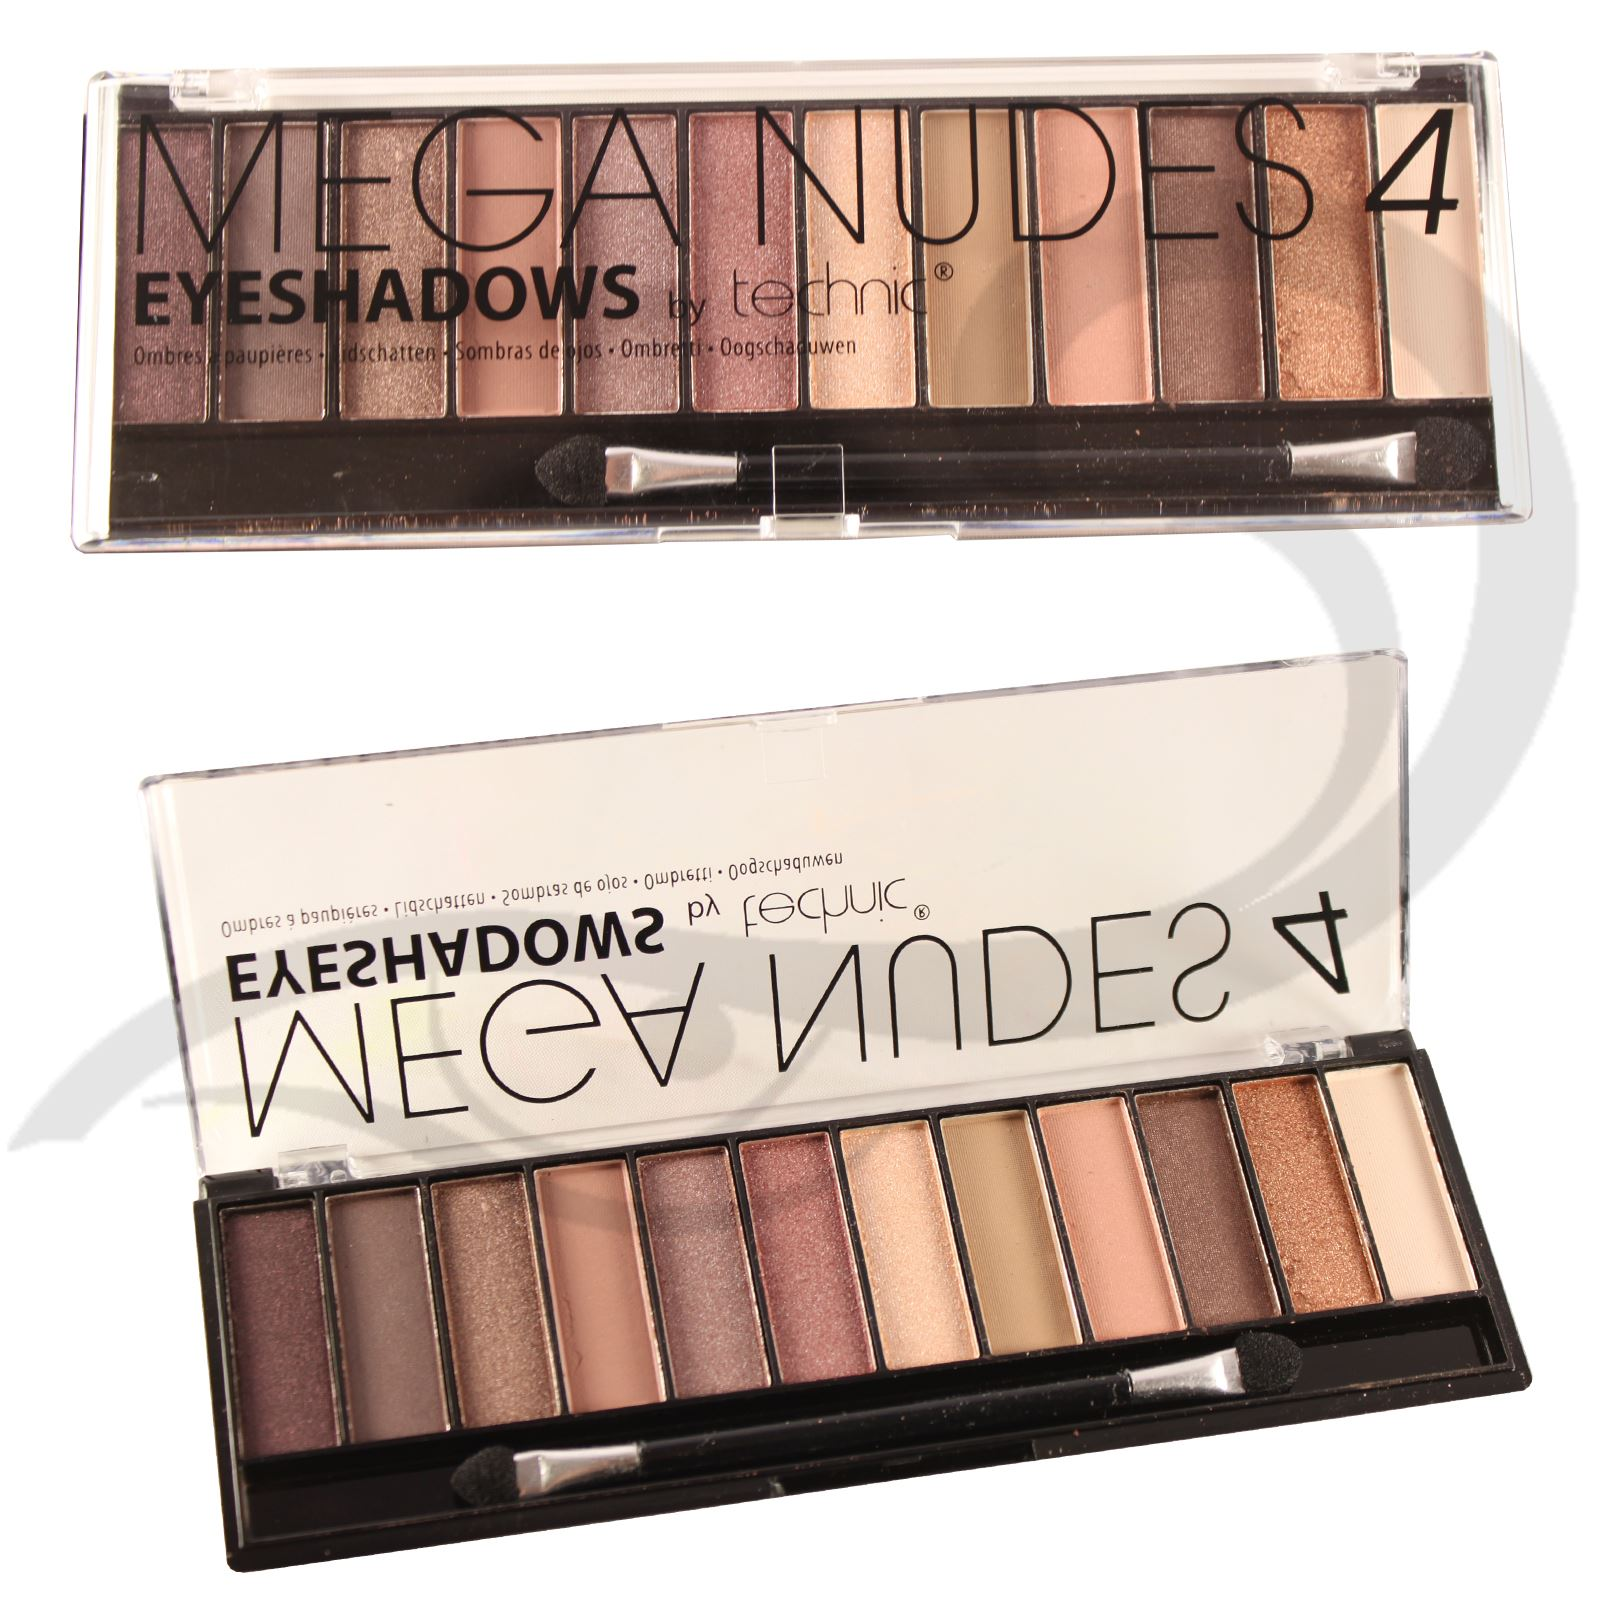 technic eyeshadow mega nude matte sultry palette 12 shade colour natural shadow ebay. Black Bedroom Furniture Sets. Home Design Ideas